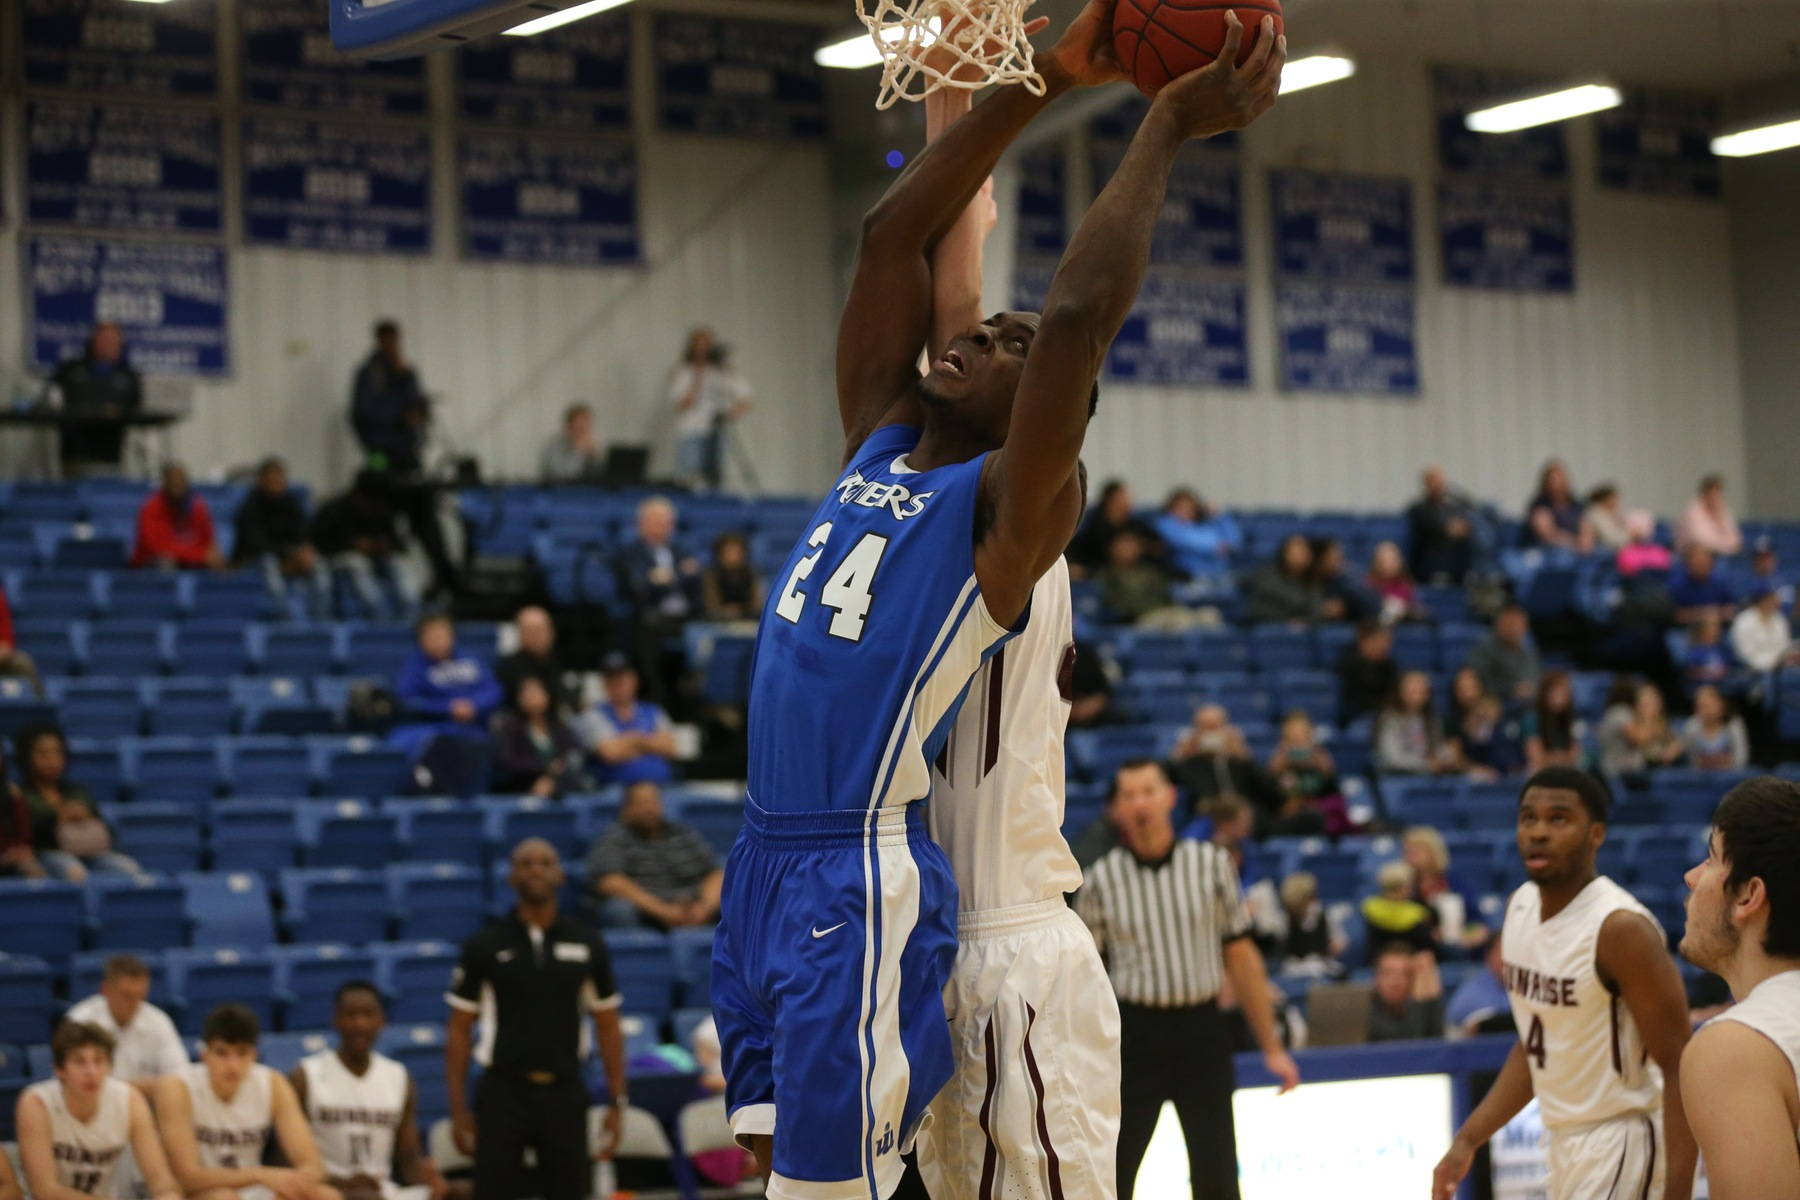 Iowa Western's Emmanuel Ugboh scored 12 points and grabbed 7 rebounds in only 17 minutes of foul plagued action Friday evening (11/2/18) against Sunrise Christian.